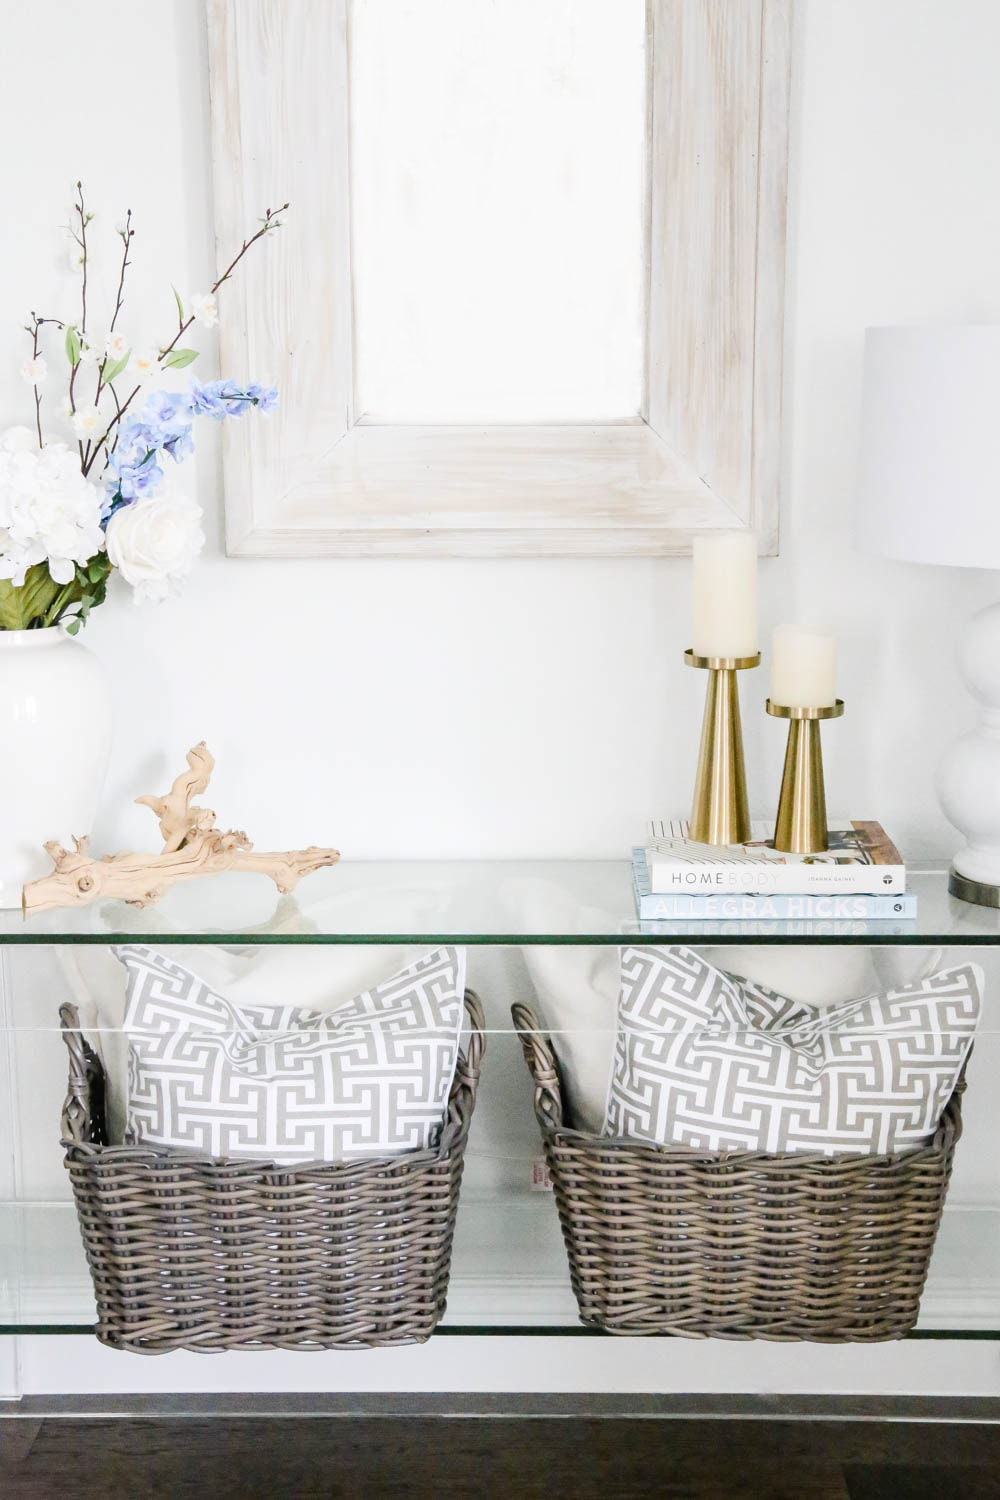 Baskets filled with pillows, spring flowers, gold candlesticks on a lucite table. #ABlissfulNest #springdecor #homedecor #decorideas